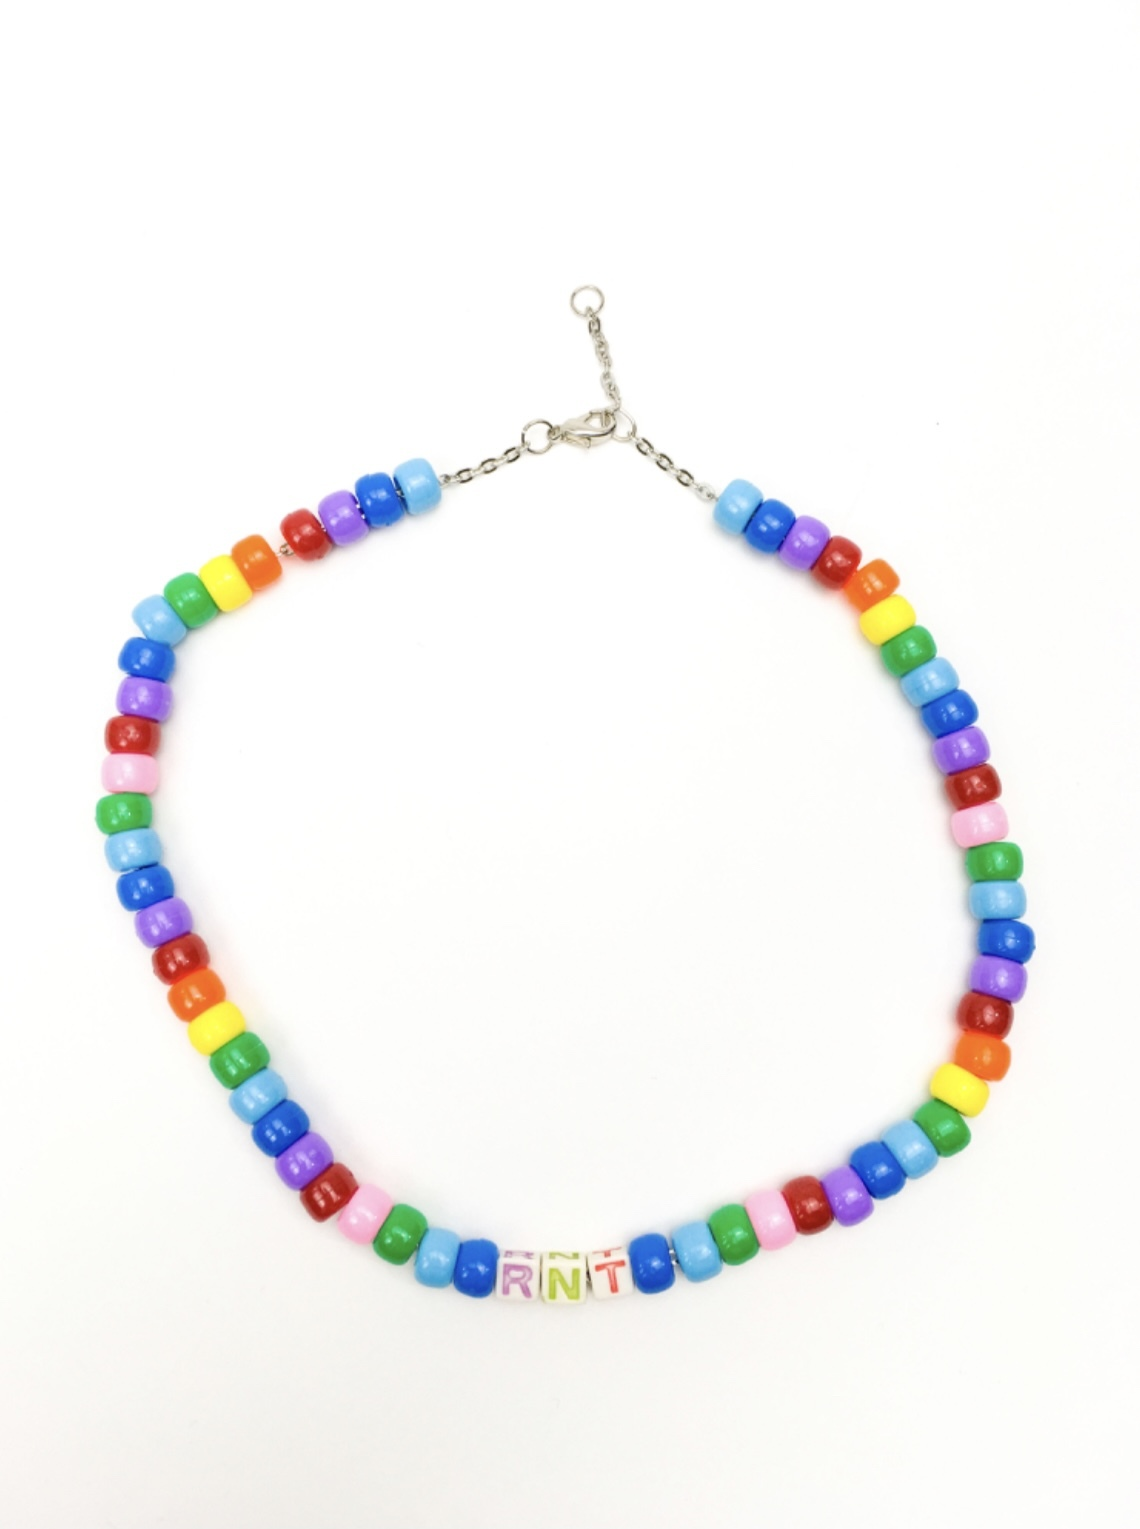 『RICE NINE TEN』TOY BEADS NECKLACE